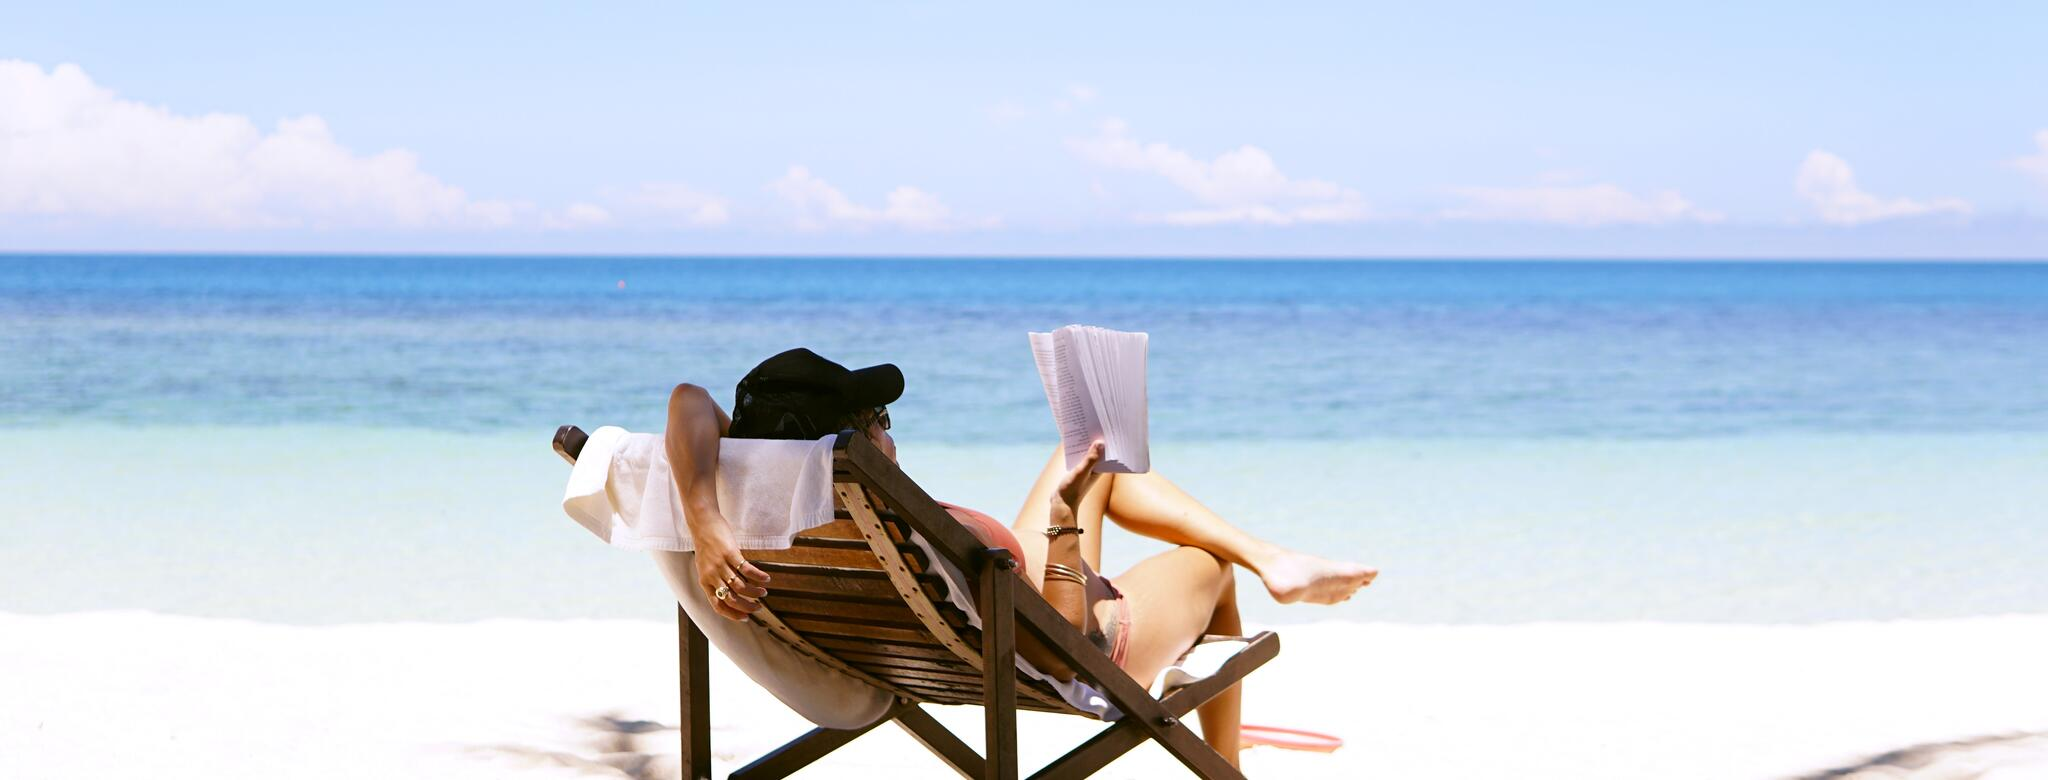 Woman reading a book on the beach in a chair